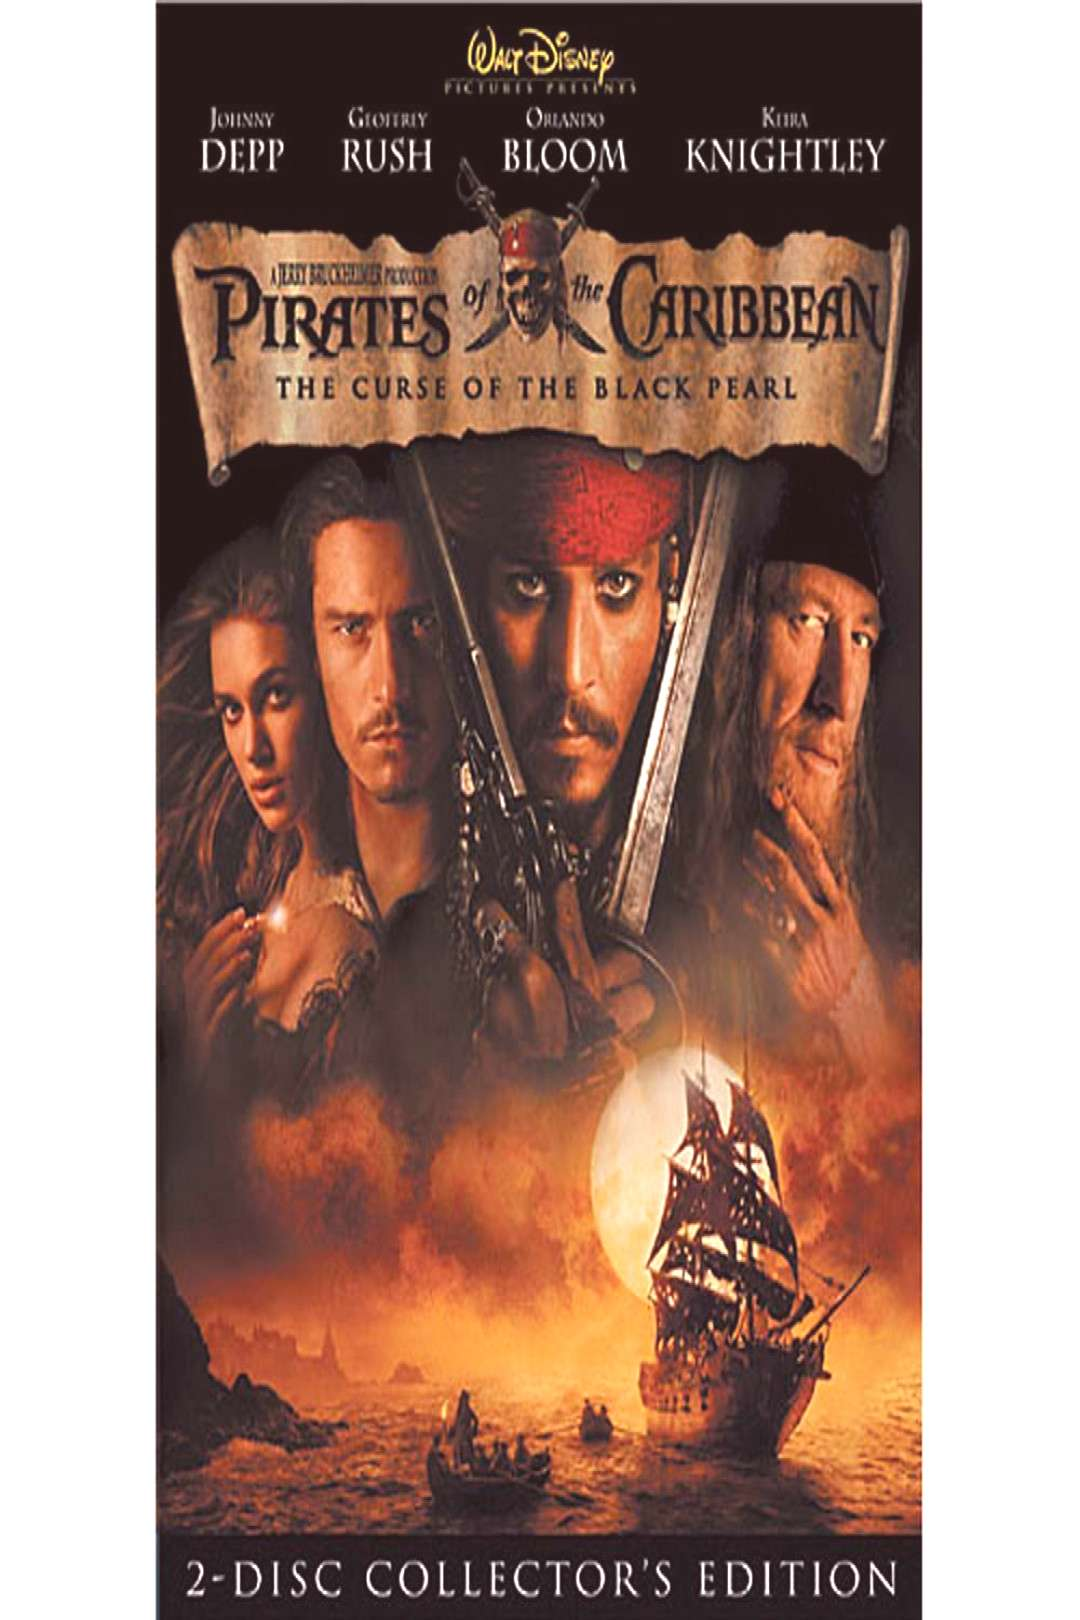 Pirates of the Caribbean The Curse of the Black Pearl DVD shopDisney